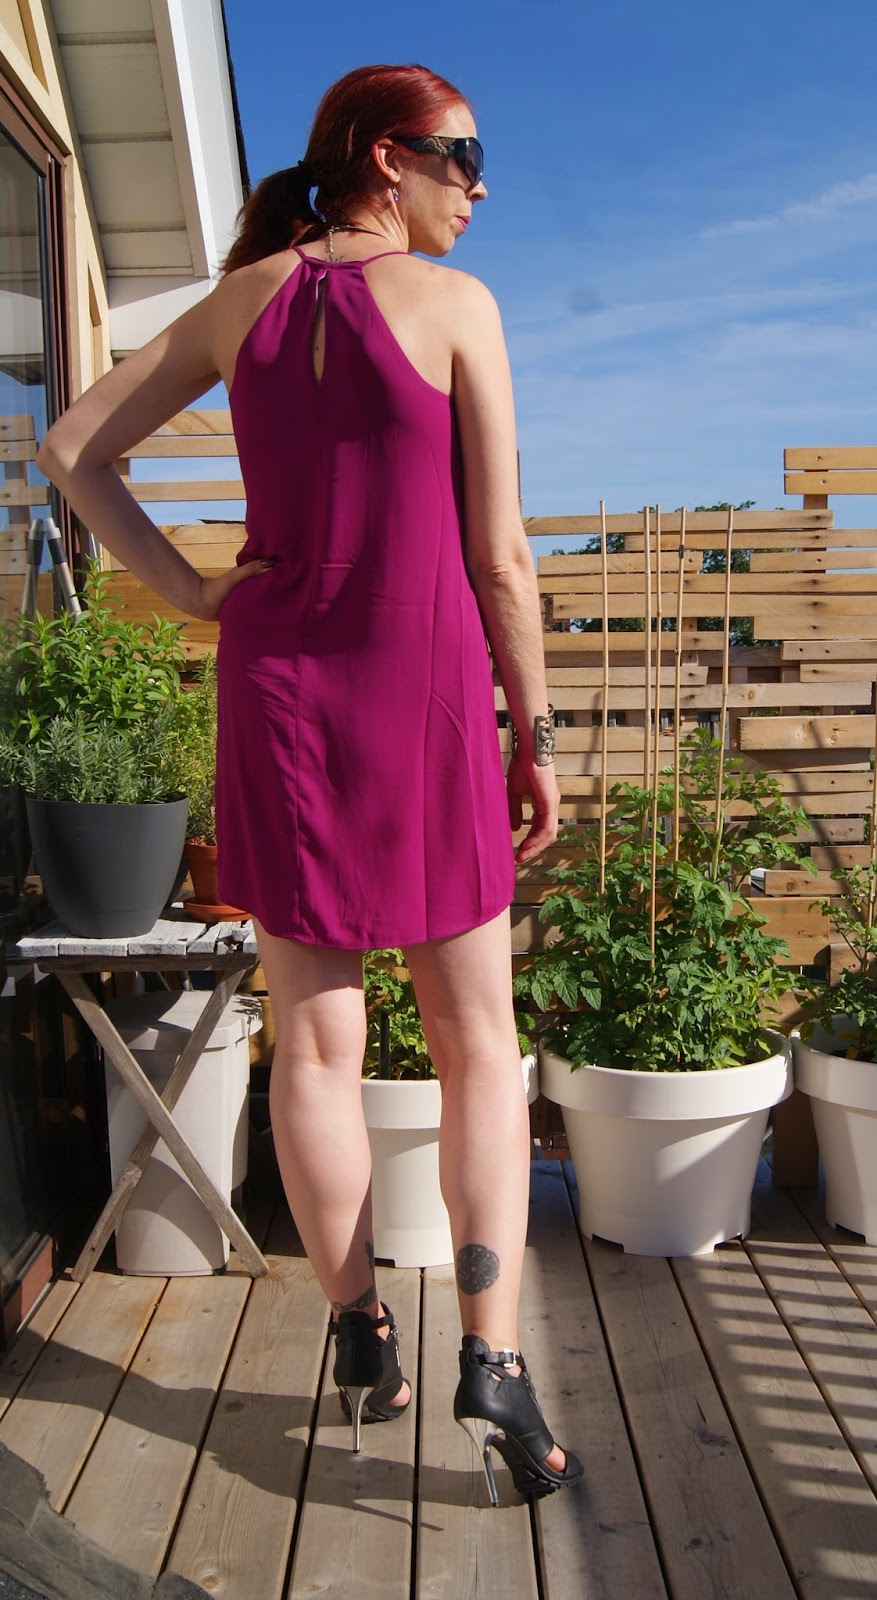 Reversible Cami Dress from Express, Shop For Jayu Necklace, Forever 21 Shoes, Local Buttons Bracelet, Fashion, Style, Orchid, Melanie_Ps, The Purple Scarf, Toronto, Outfit, Travel, Cami, accessories, Heels